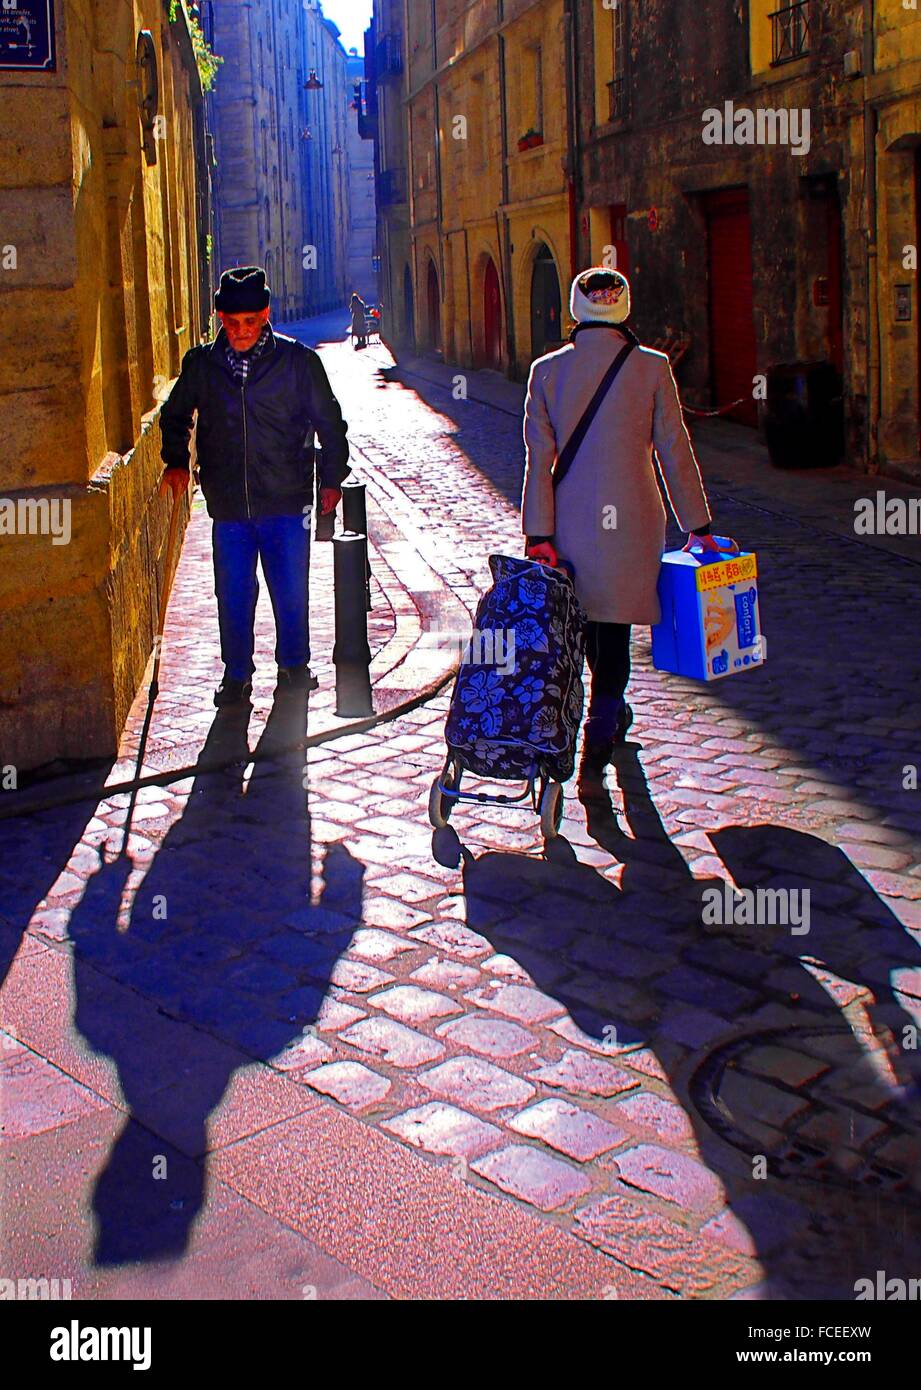 Saint Michel area in the old Bordeaux, Gironde, Aquitaine, France - Stock Image